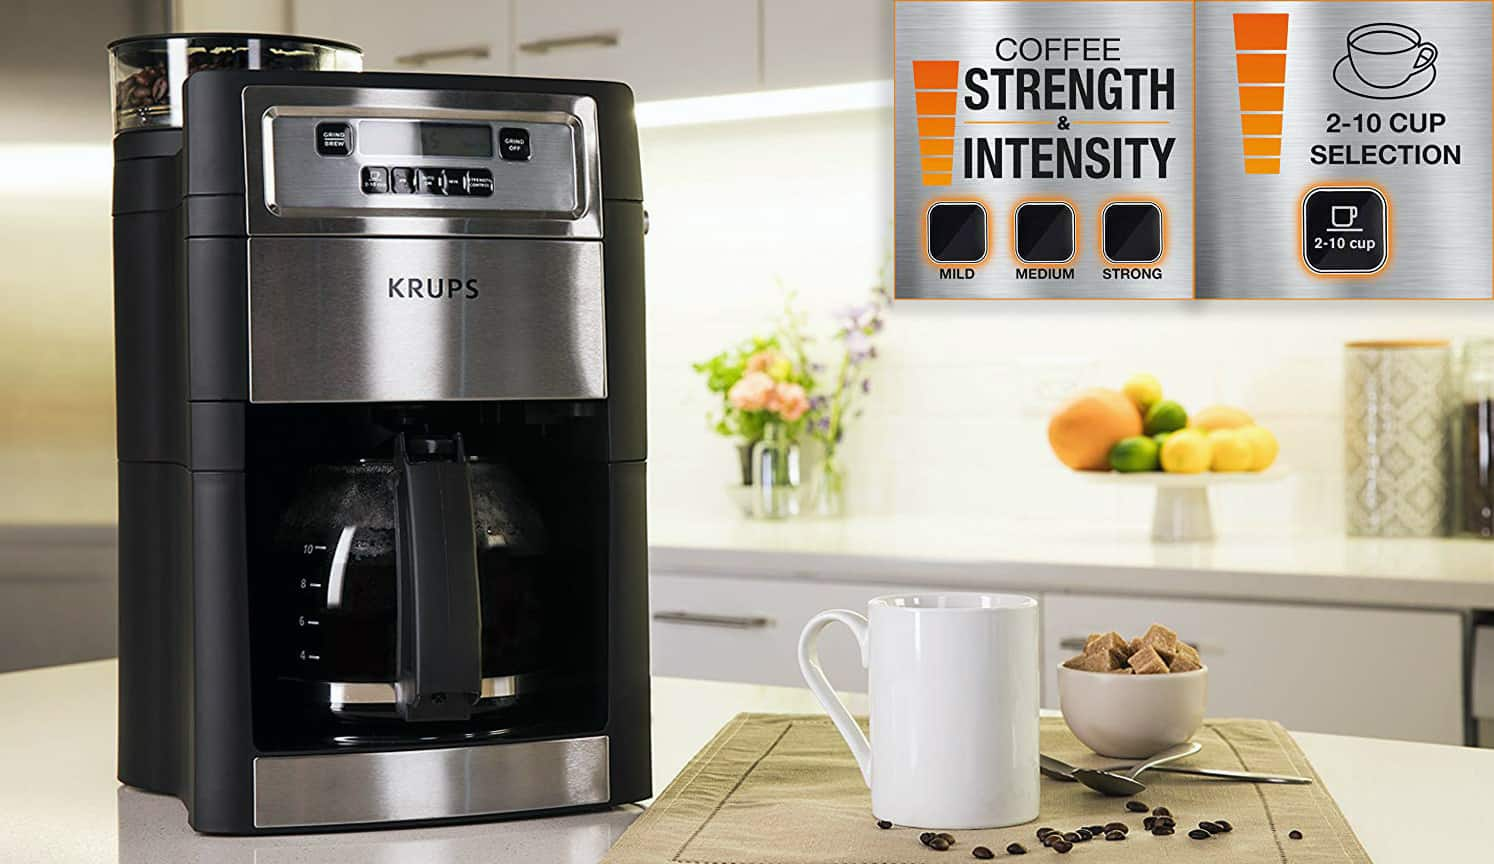 Best Coffee Maker With Grinder as the third related product of the Best Home Coffee Maker